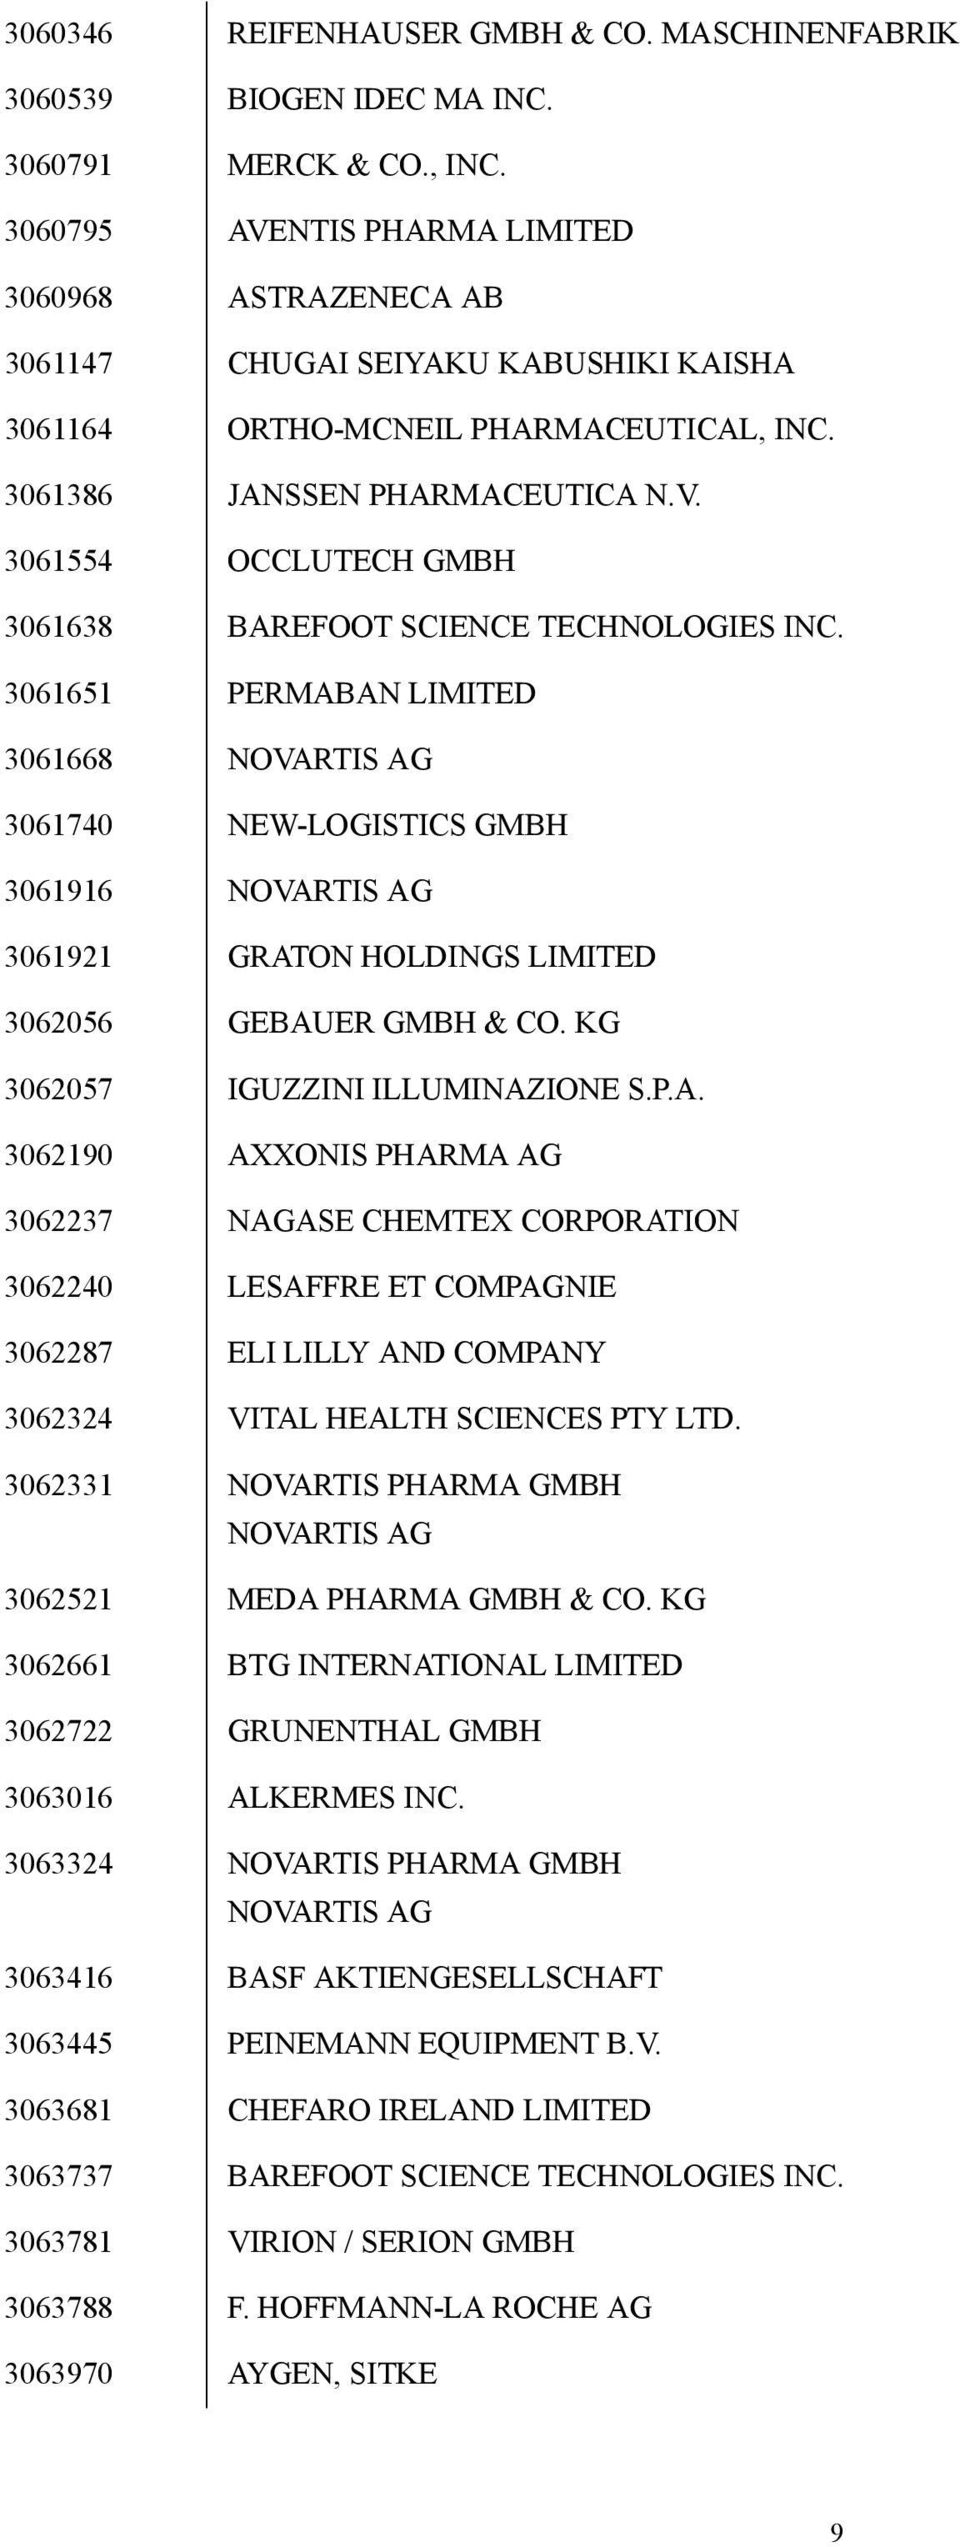 3061651 PERMABAN LIMITED 3061668 NOVARTIS AG 3061740 NEW-LOGISTICS GMBH 3061916 NOVARTIS AG 3061921 GRATON HOLDINGS LIMITED 3062056 GEBAUER GMBH & CO. KG 3062057 IGUZZINI ILLUMINAZIONE S.P.A. 3062190 AXXONIS PHARMA AG 3062237 NAGASE CHEMTEX CORPORATION 3062240 LESAFFRE ET COMPAGNIE 3062287 ELI LILLY AND COMPANY 3062324 VITAL HEALTH SCIENCES PTY LTD.